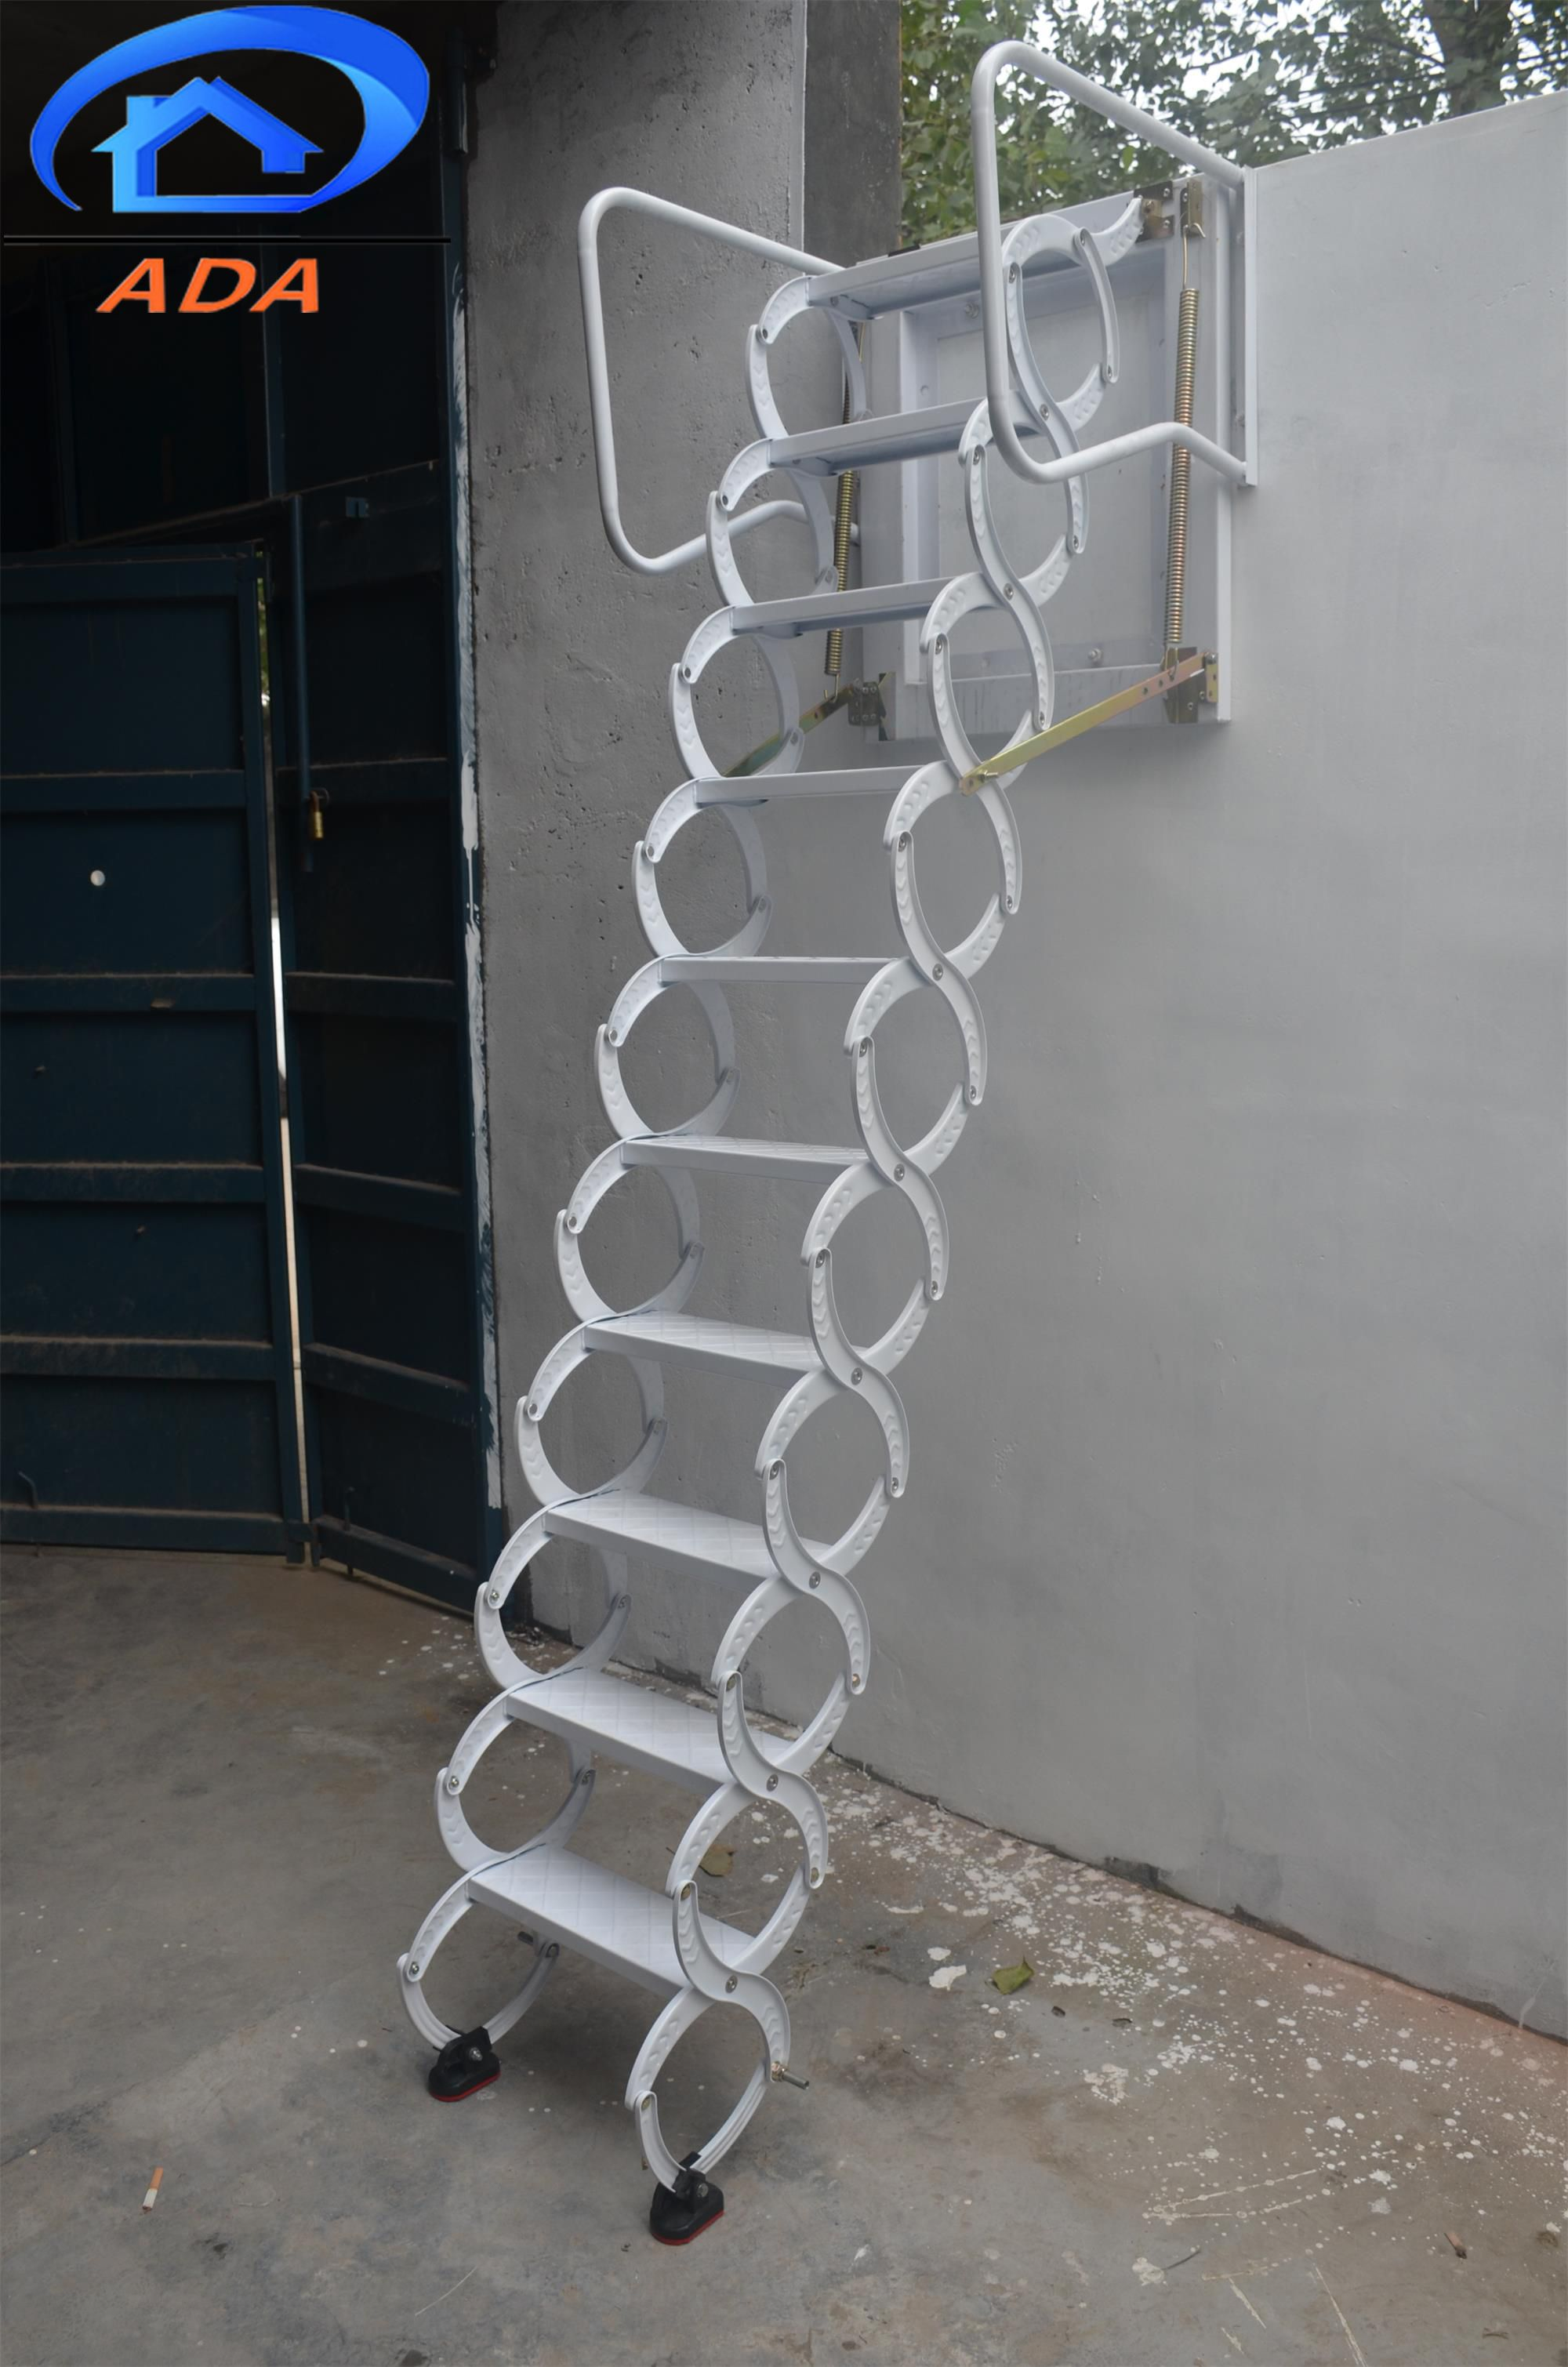 Outdoor Drop Down Wall Mounted Ladder Folding Attic Stairs Attic Stairs Wall Ladders